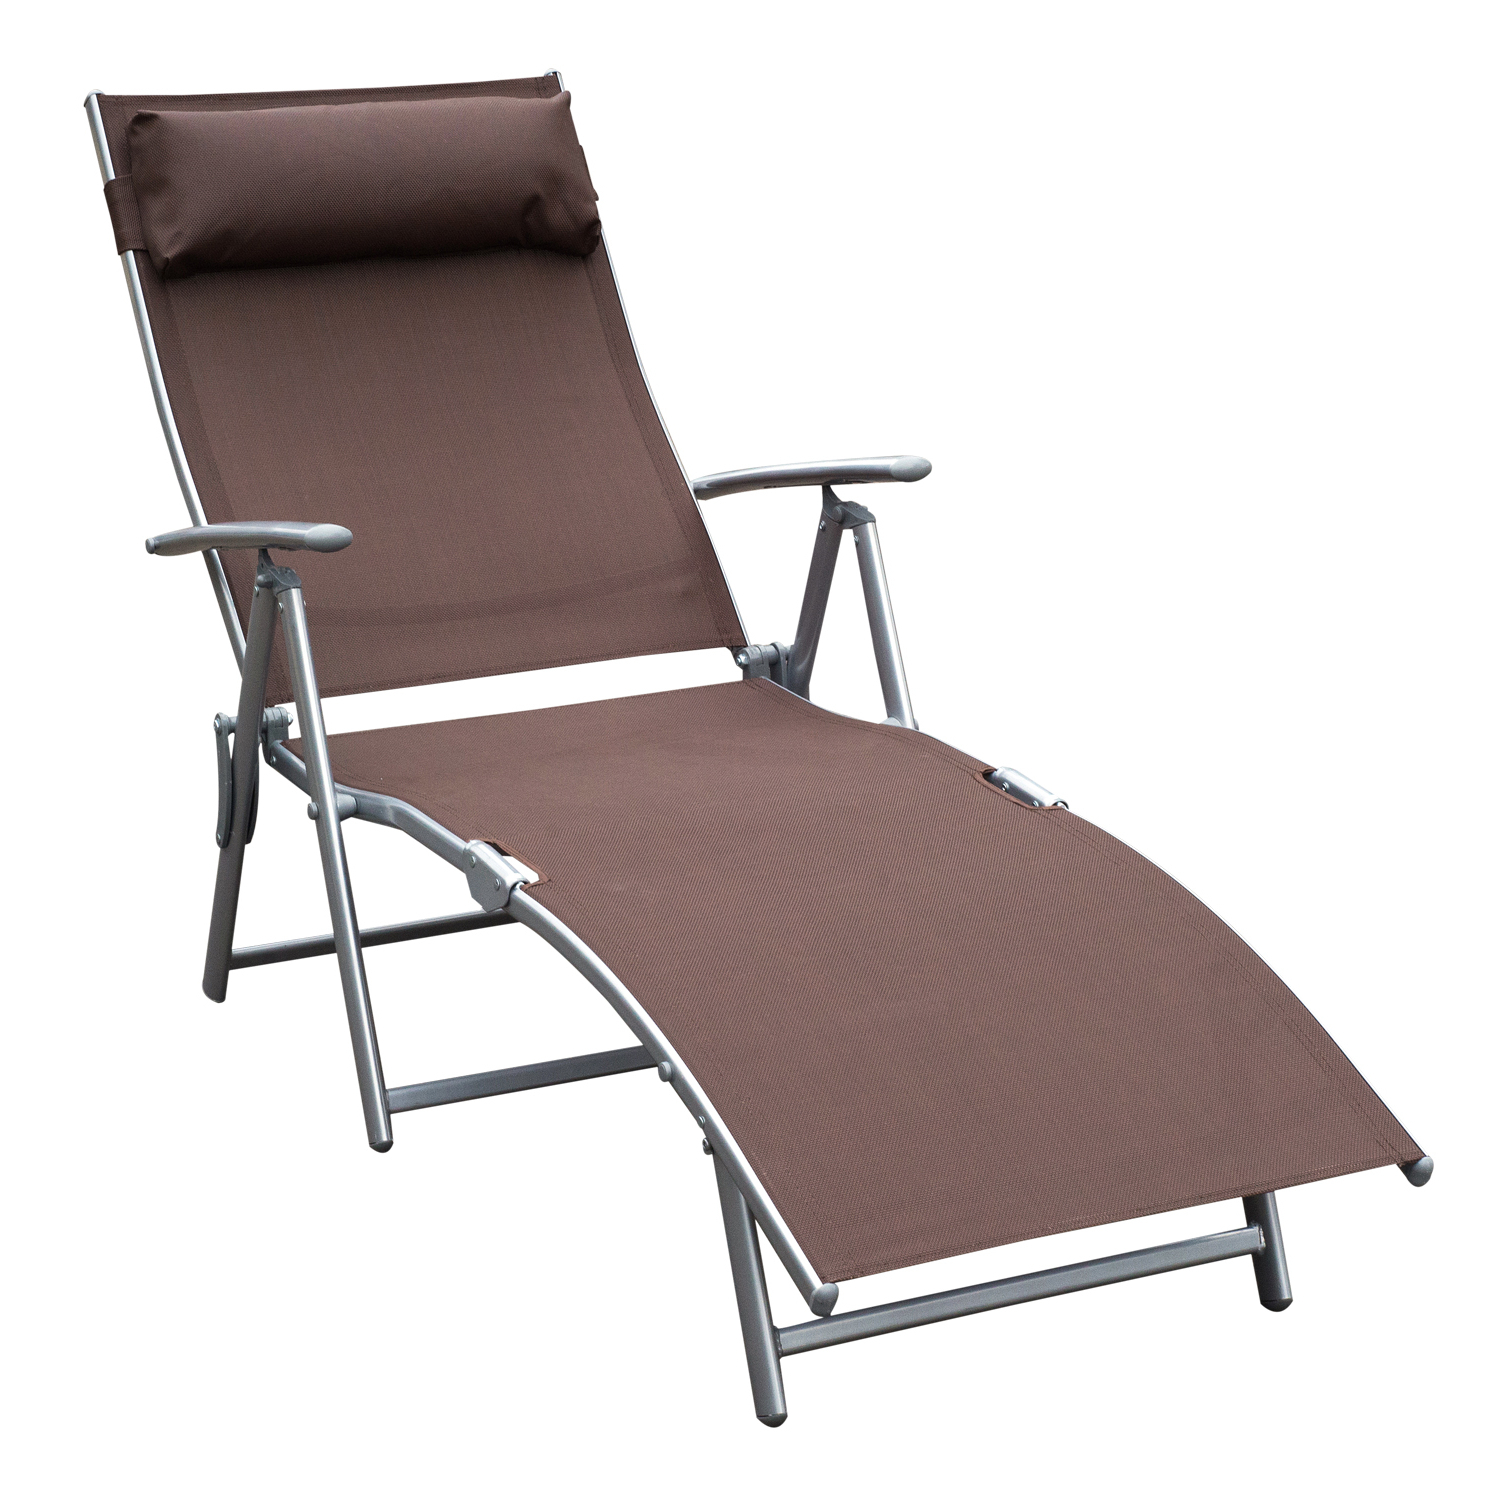 Trendy Outsunny Sling Fabric Folding Patio Reclining Outdoor Deck Chaise Lounge Chair With Cushion – Brown Throughout Reclining Sling Chaise Lounges (View 20 of 25)